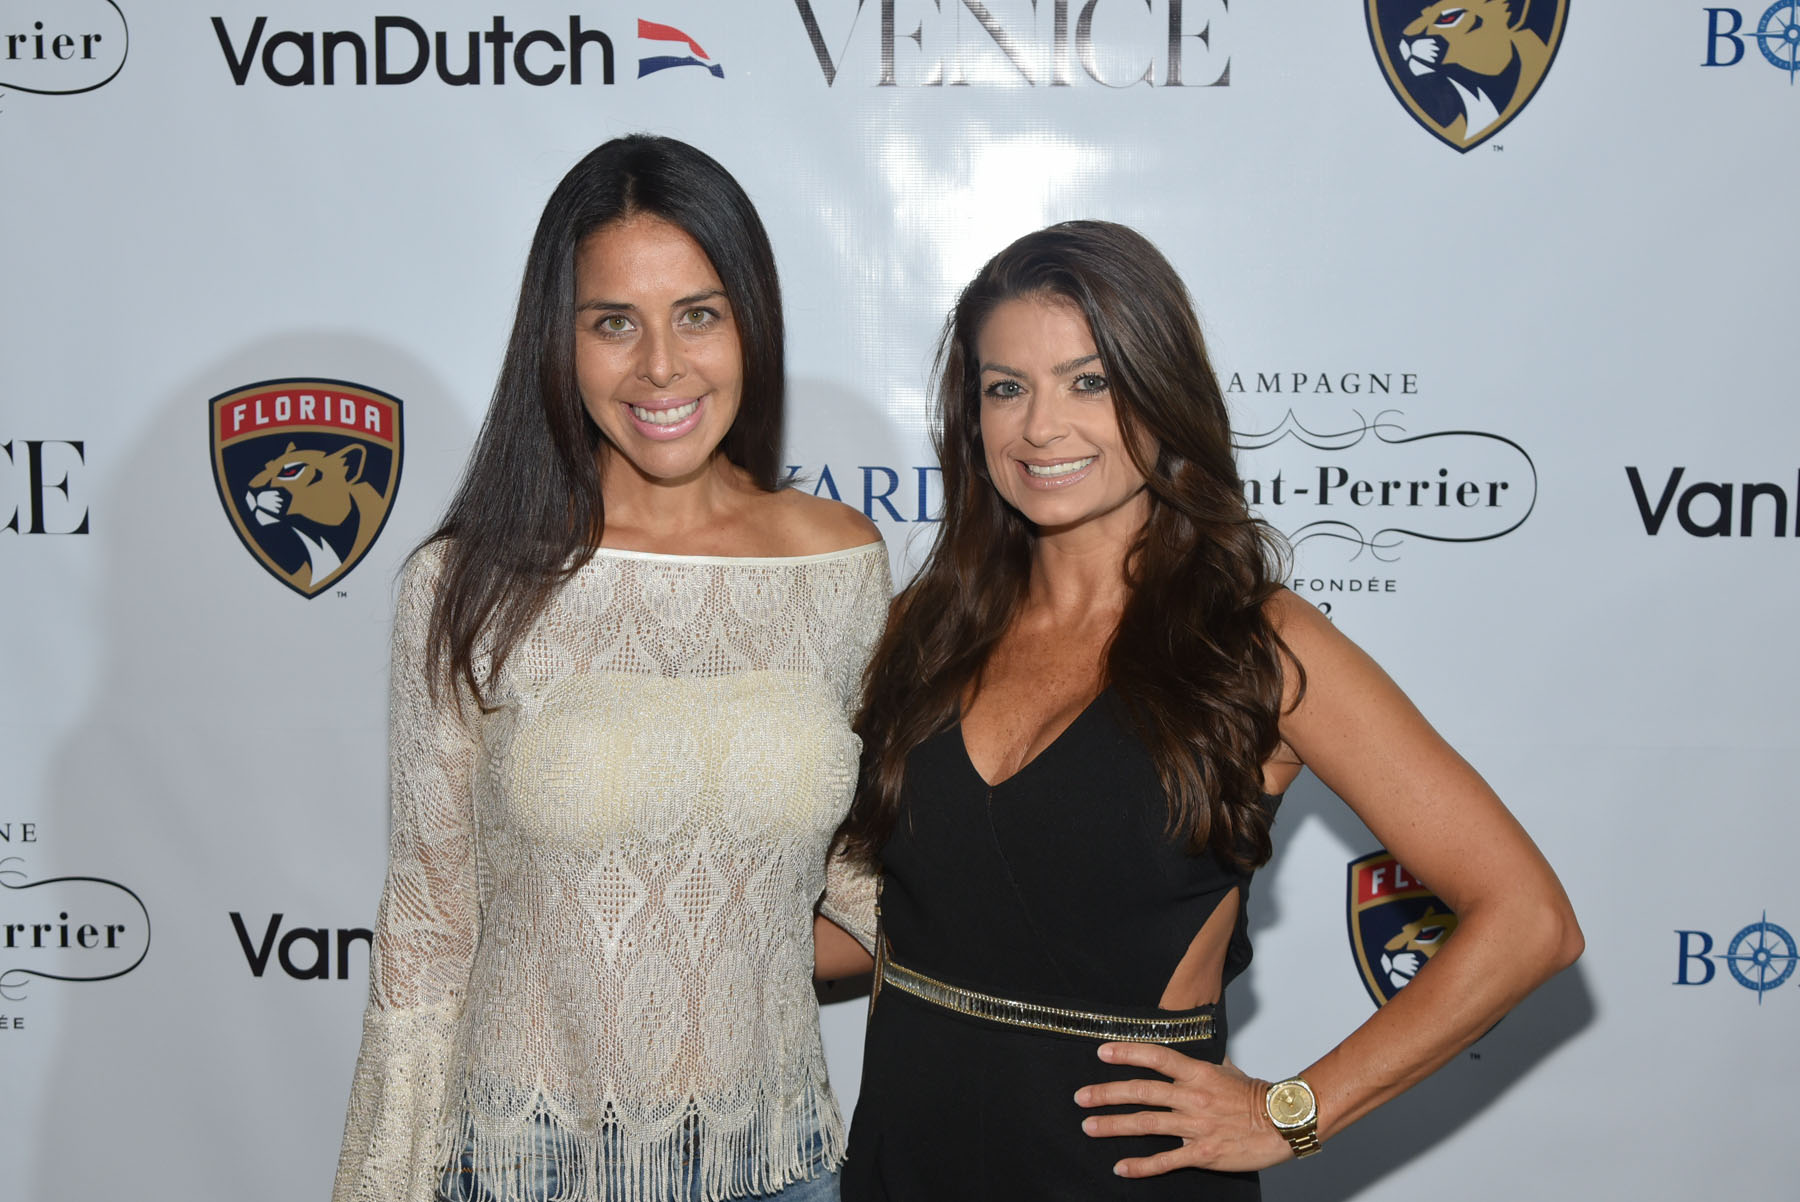 jenny-granieri-and-eva-gracia-City-Cool-Boat-Yard-Fort-Lauderdale-Venice-Magazine